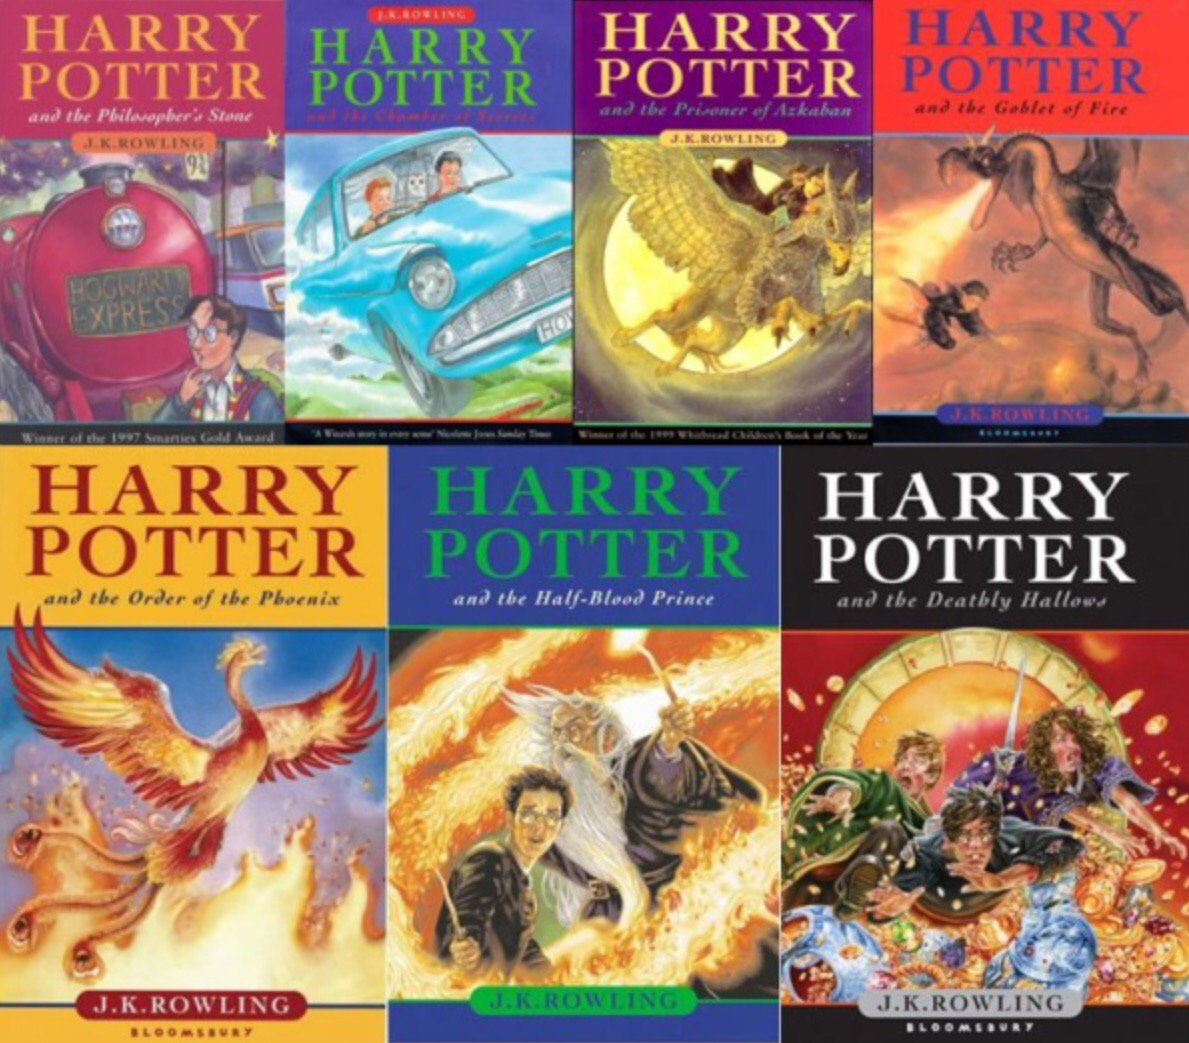 Harry Potter Book Cover Uk ~ Harry potter prints and posters now available to uk fans through